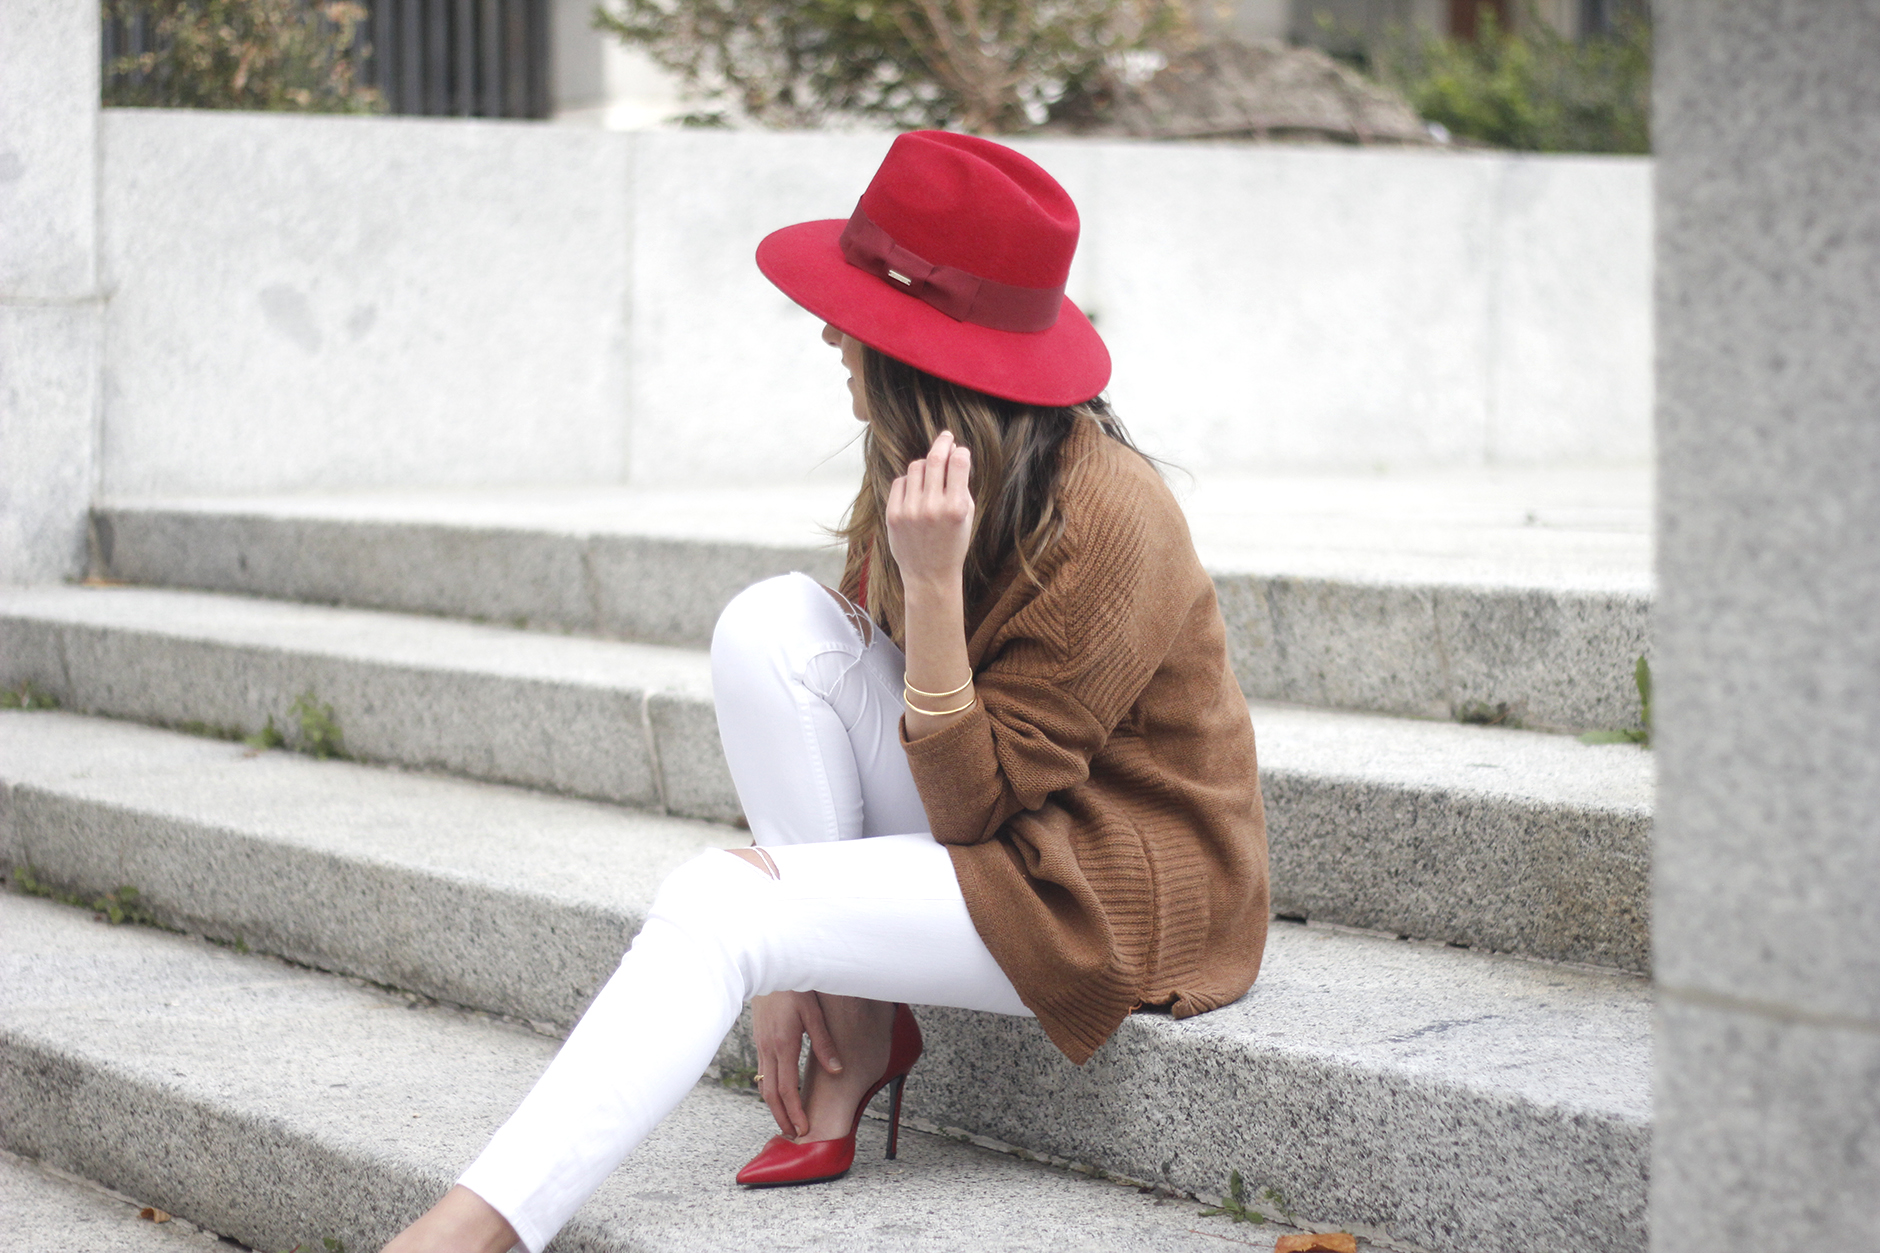 Turtleneck Sweater white jeans red heels red hat uterqüe outfit12